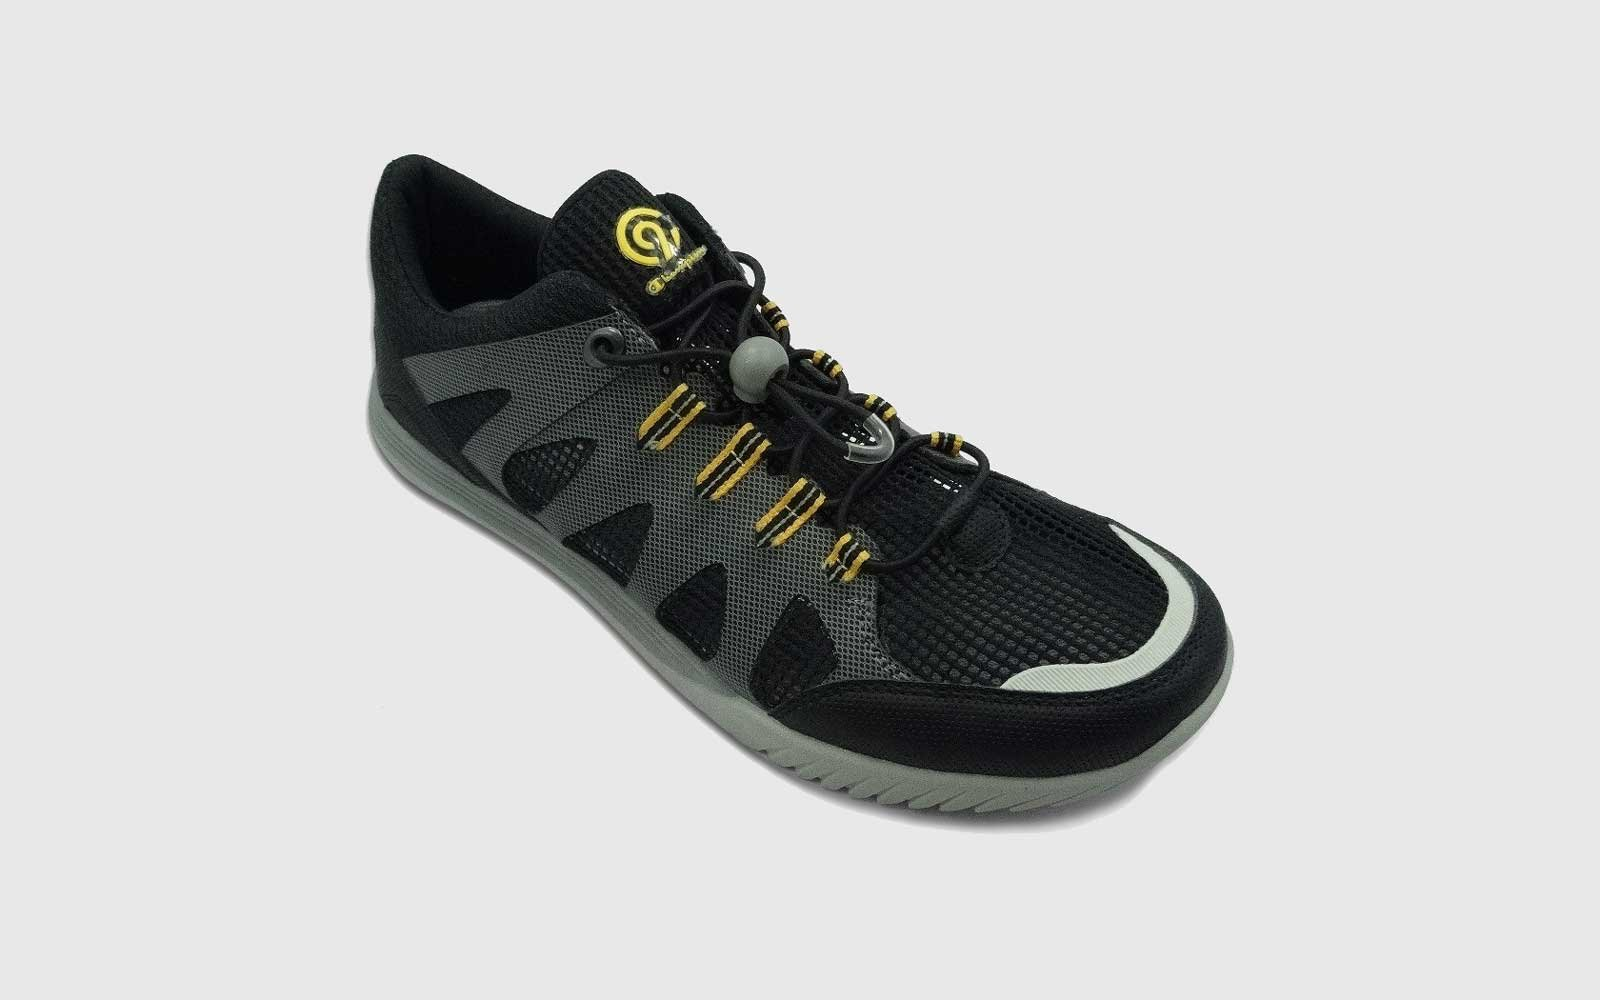 c9 champion mens water shoes